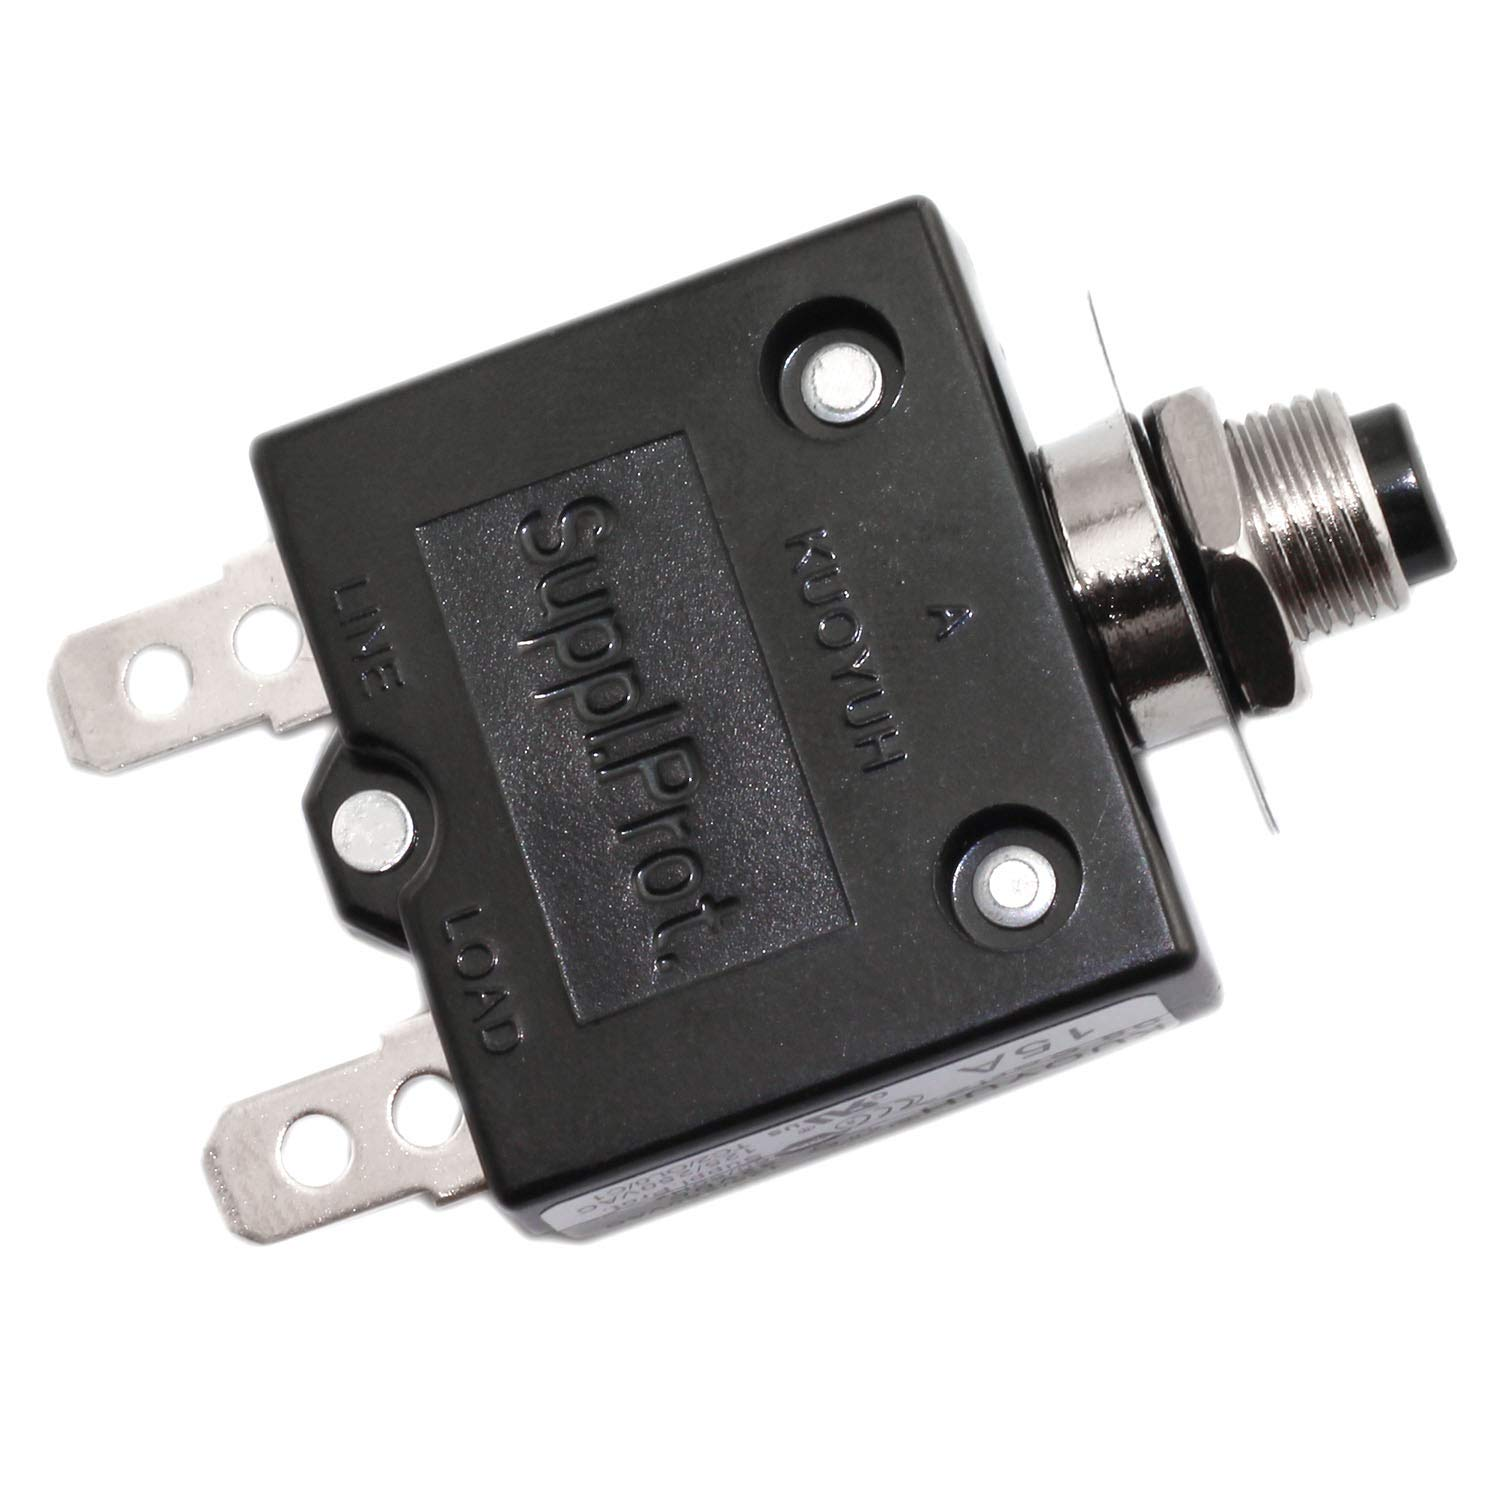 RuiLing 1-Pack 15A Thermal Overload Protector Push Button Switch Mini Size Thermal Circuit Breakers